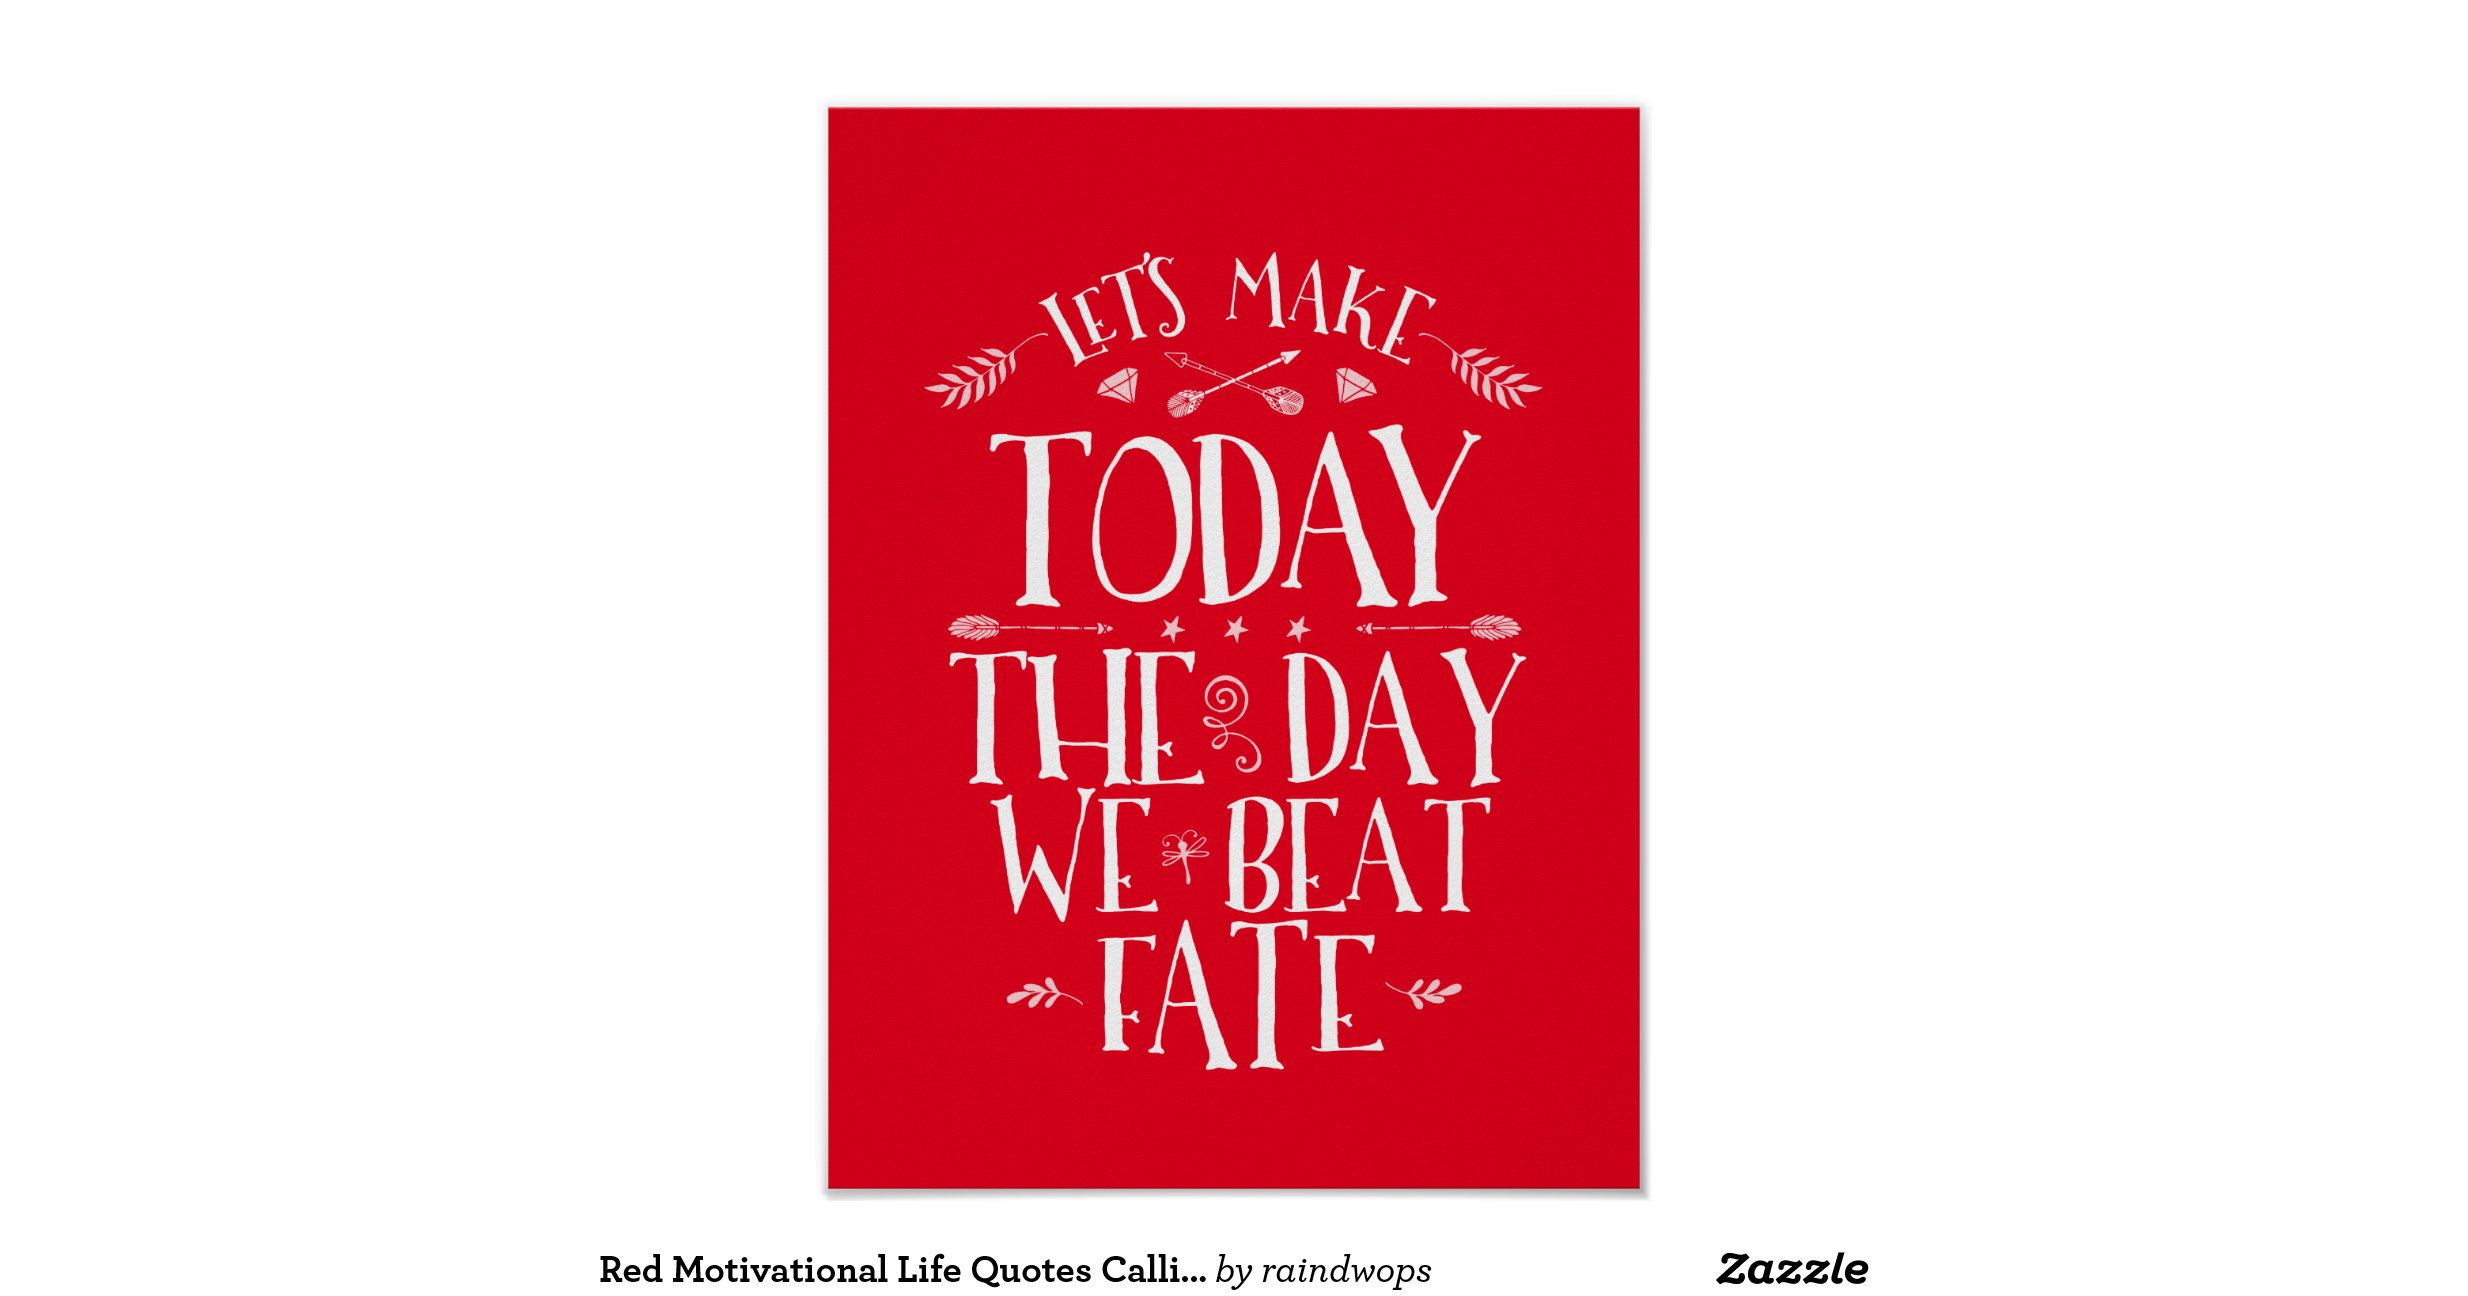 Red Motivational Life Quotes Calligraphy Poster Zazzle